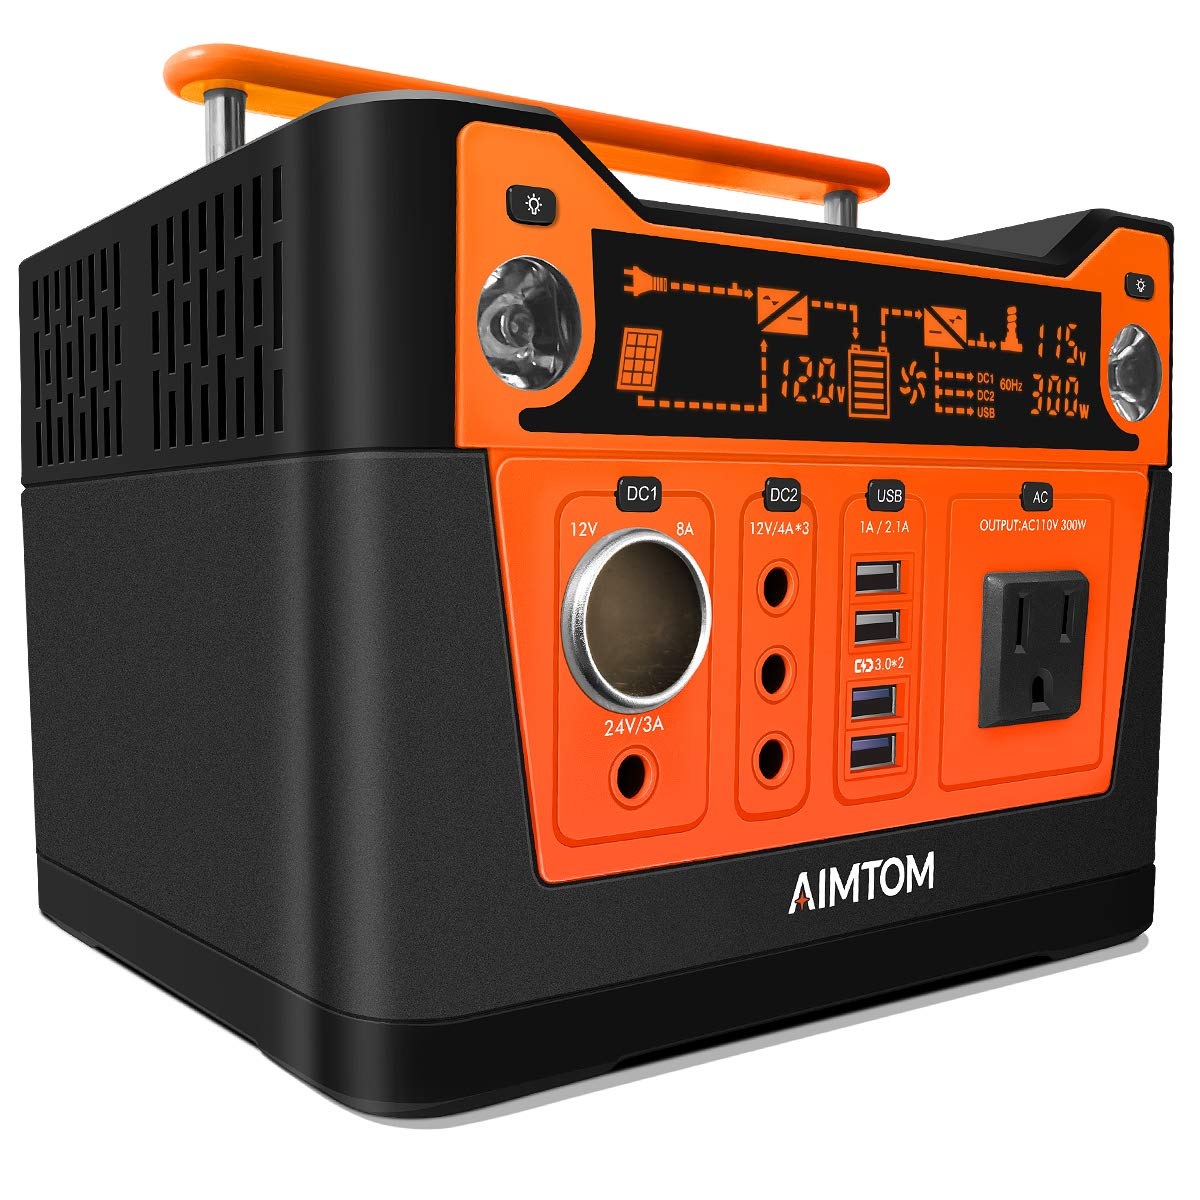 AIMTOM 300-Watt Portable Power Station – 280Wh Battery Powered Generator Alternative with 12V, 24V, AC and USB Outputs – Solar Rechargeable Lithium Backup Power – for Camping Outdoors RV Emergency